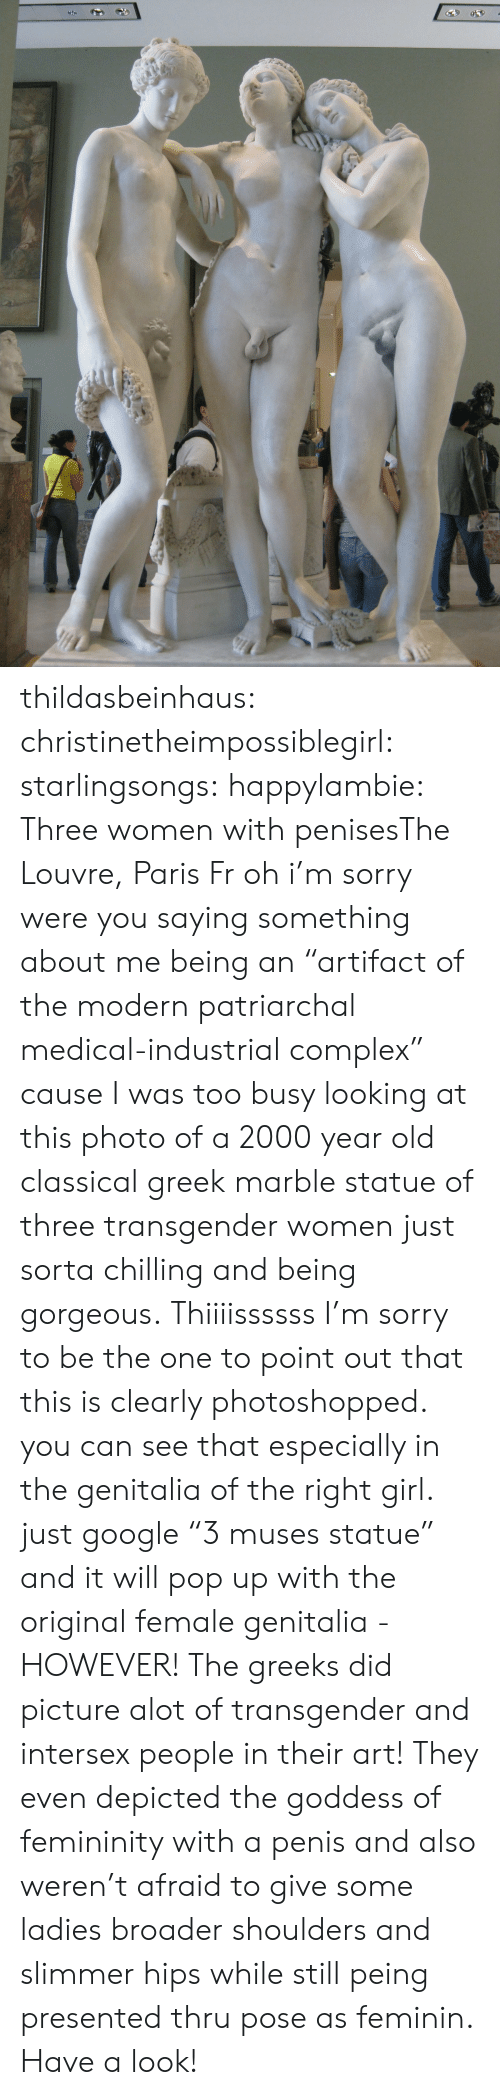 """Statue Of: thildasbeinhaus:  christinetheimpossiblegirl:  starlingsongs:  happylambie:  Three women with penisesThe Louvre, Paris Fr  oh i'm sorry were you saying something about me being an """"artifact of the modern patriarchal medical-industrial complex"""" cause I was too busy looking at this photo of a 2000 year old classical greek marble statue of three transgender women just sorta chilling and being gorgeous.  Thiiiissssss  I'm sorry to be the one to point out that this is clearly photoshopped. you can see that especially in the genitalia of the right girl. just google""""3 muses statue"""" and it will pop up with the original female genitalia - HOWEVER! The greeks did picture alot of transgender and intersex people in their art! They even depicted the goddess of femininity with a penis and also weren't afraid to give some ladies broader shoulders and slimmer hips while still peing presented thru pose as feminin. Have a look!"""